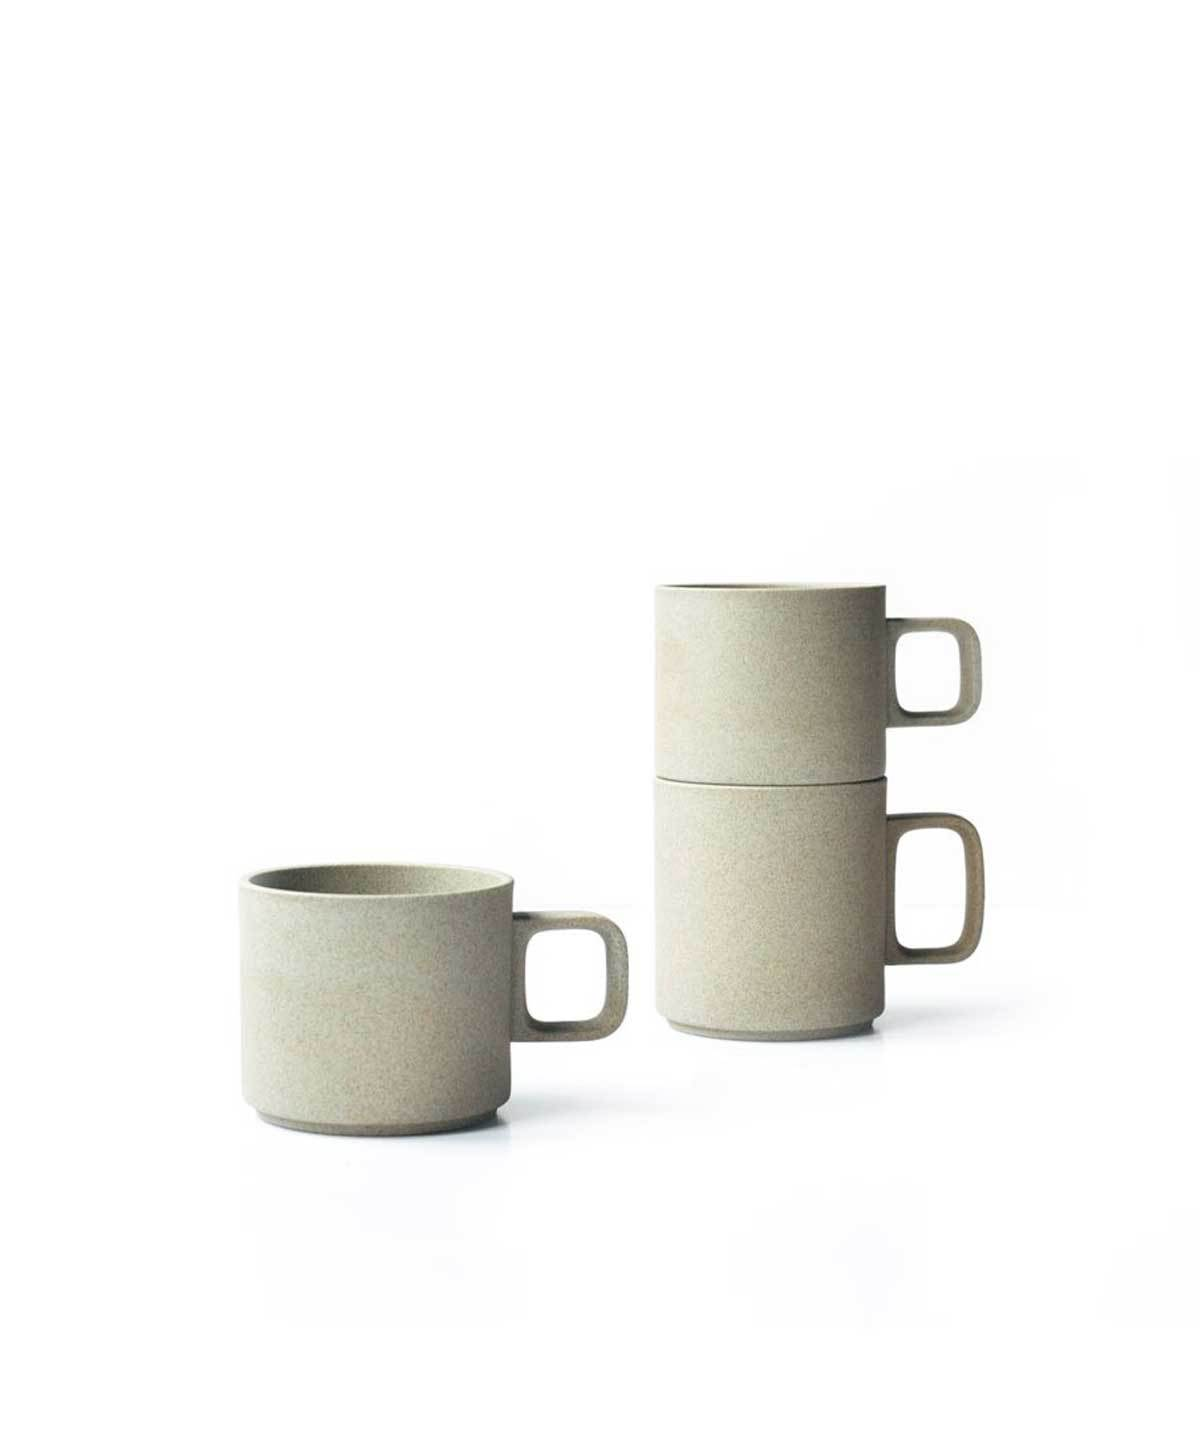 Unglazed Japanese Porcelain Mug by Loloi | TRNK